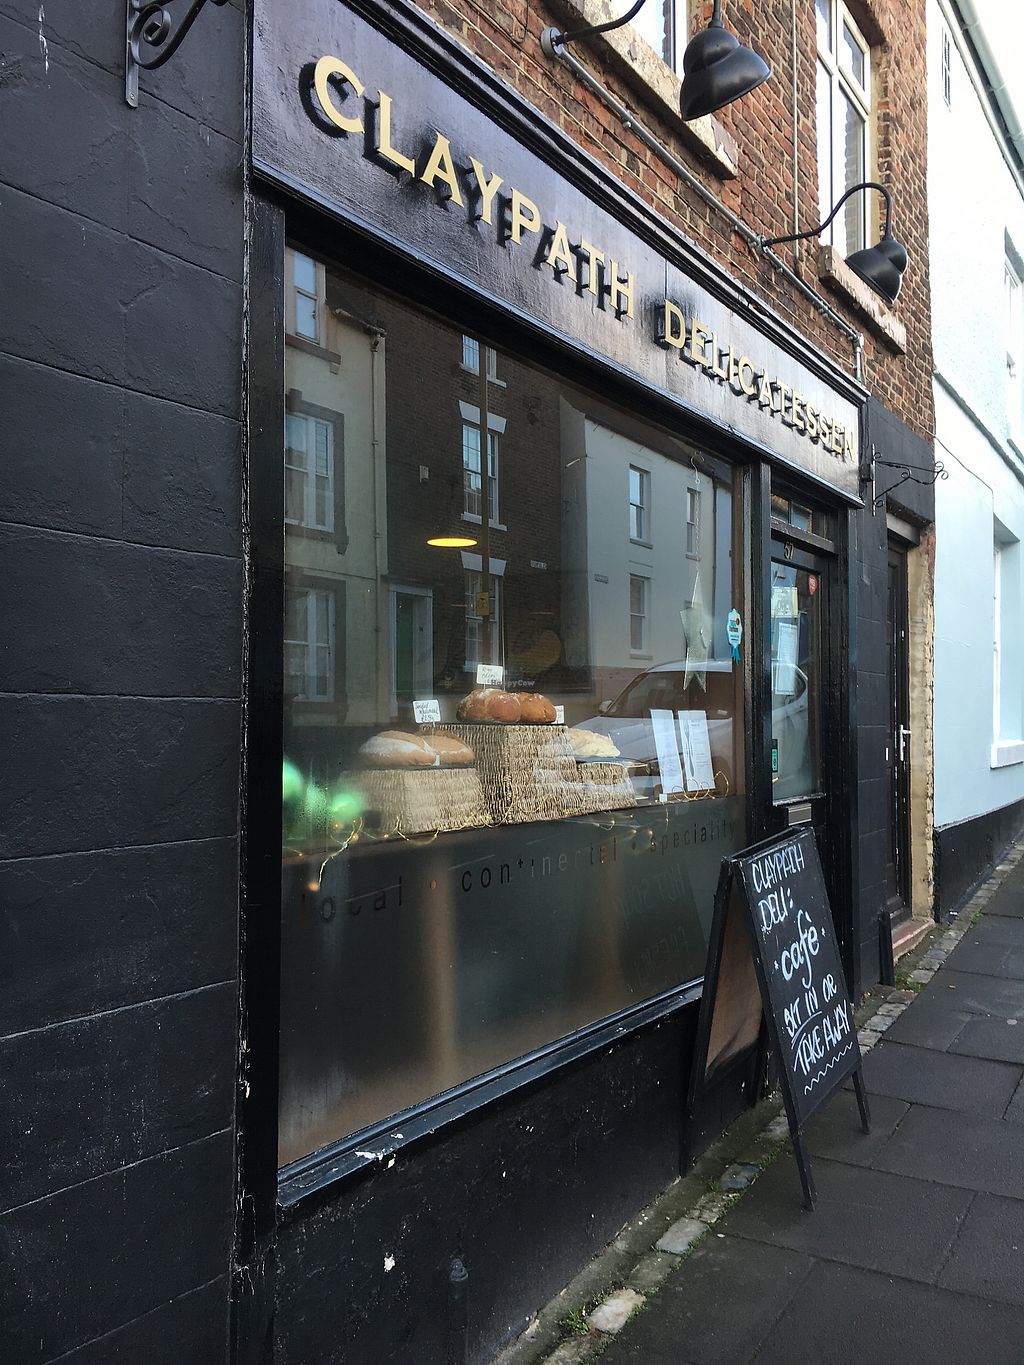 """Photo of Claypath Delicatessen  by <a href=""""/members/profile/hack_man"""">hack_man</a> <br/>Exterior <br/> December 22, 2017  - <a href='/contact/abuse/image/106651/338046'>Report</a>"""